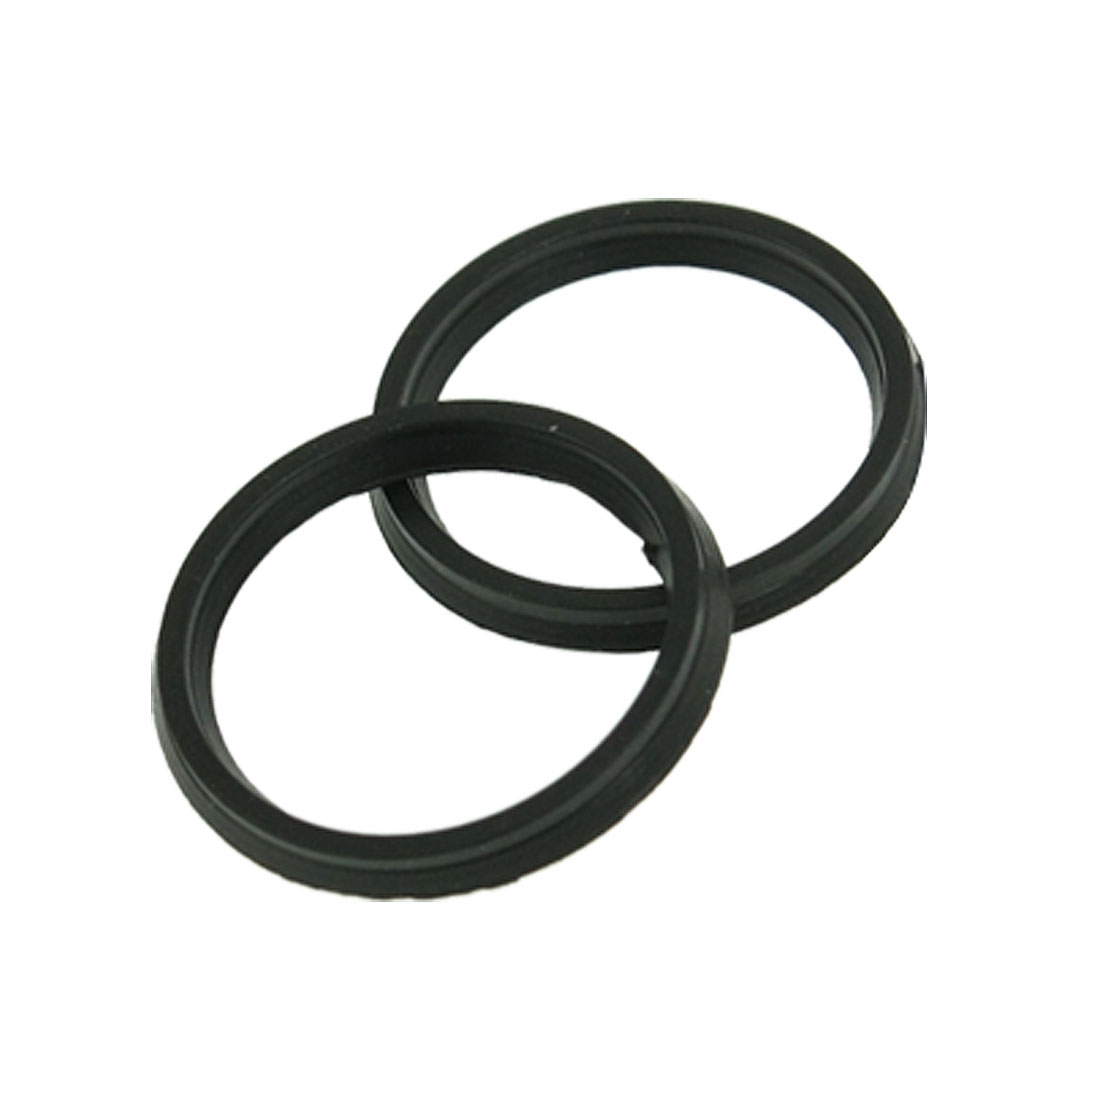 2 Pcs 22mm x 26mm Pneumatic Air Sealing Seal Rings Rubber Gaskets